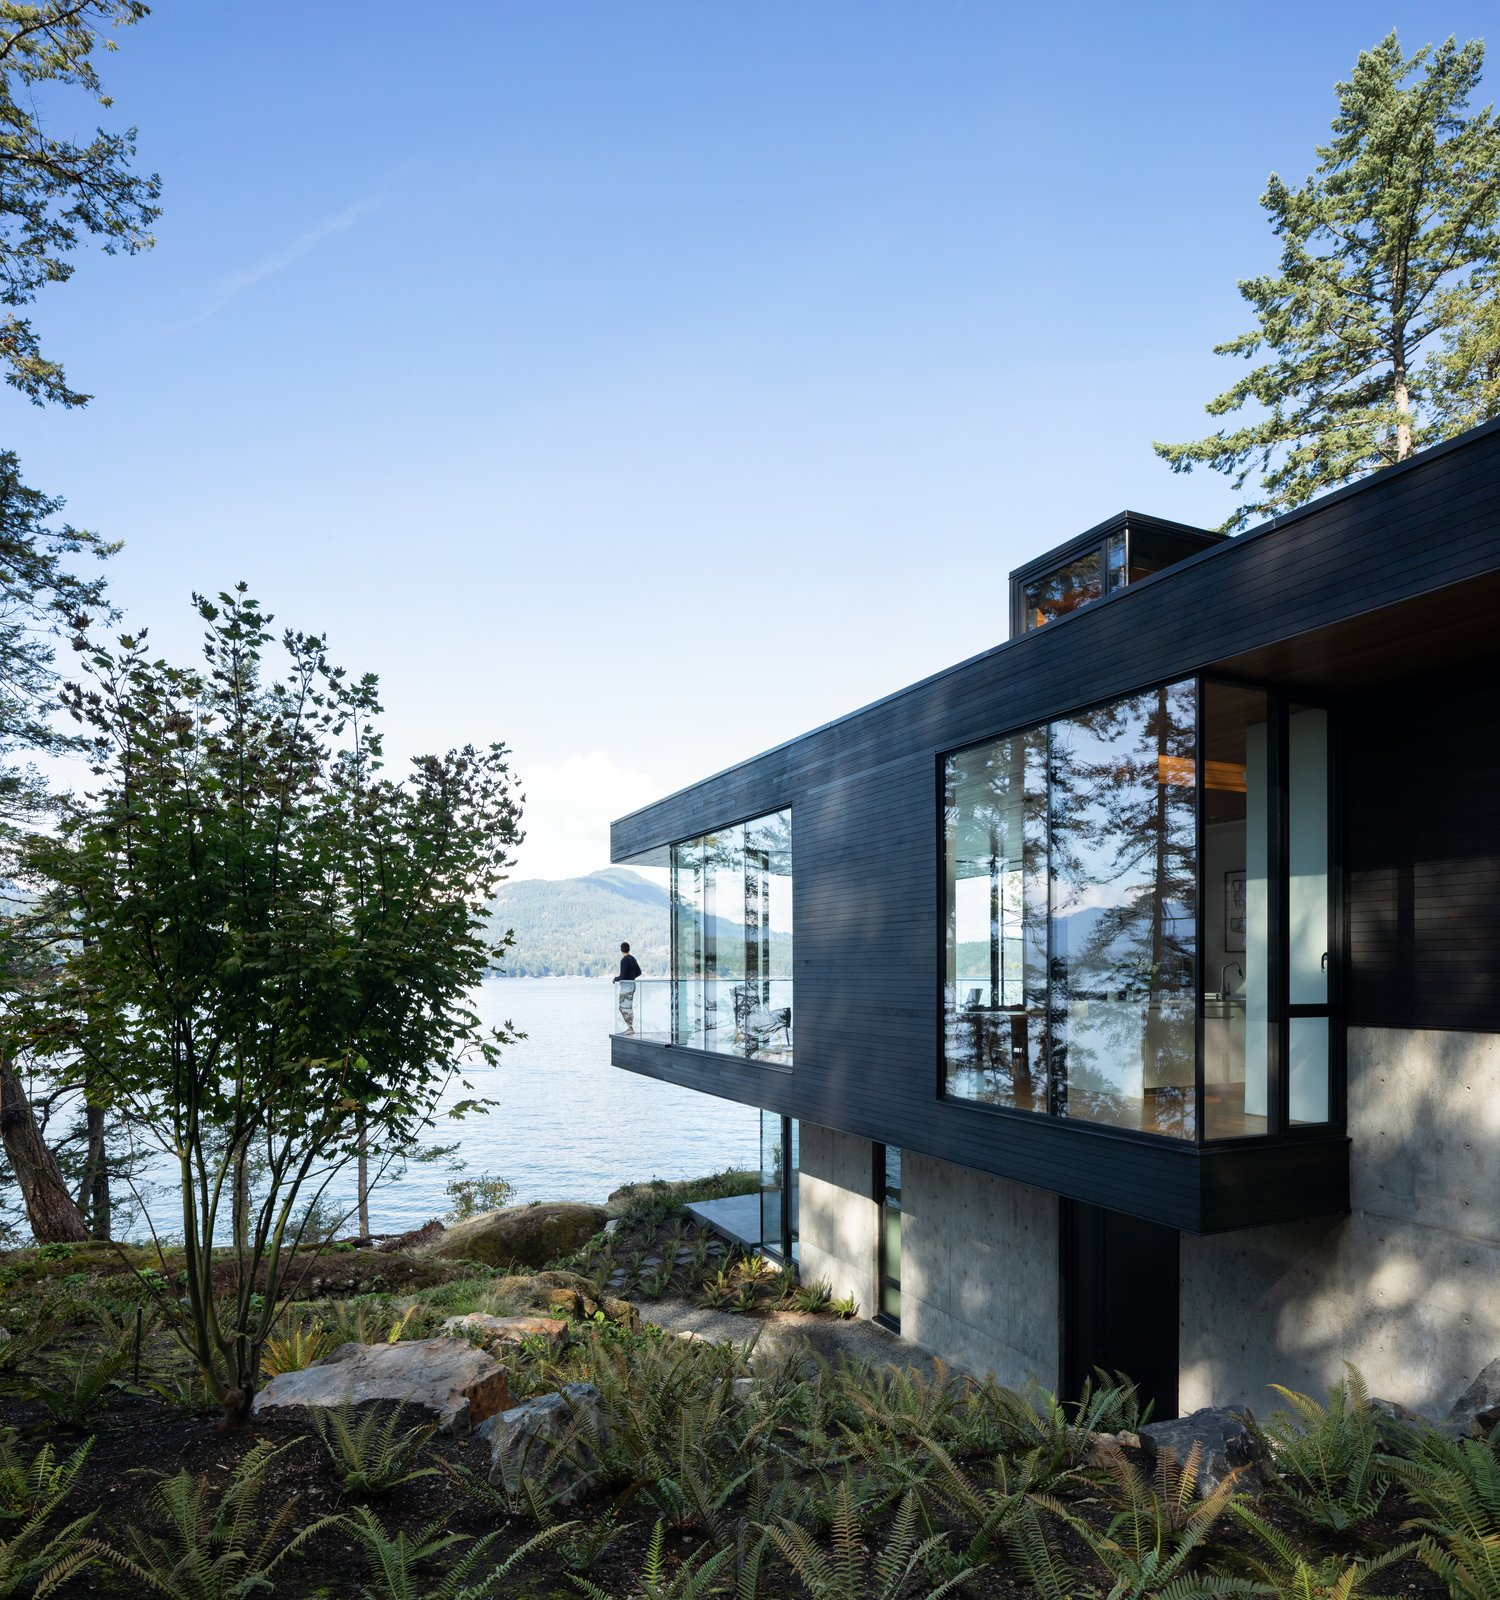 Bowen Island House daytime exterior by office of mcfarlane biggar architects + designers